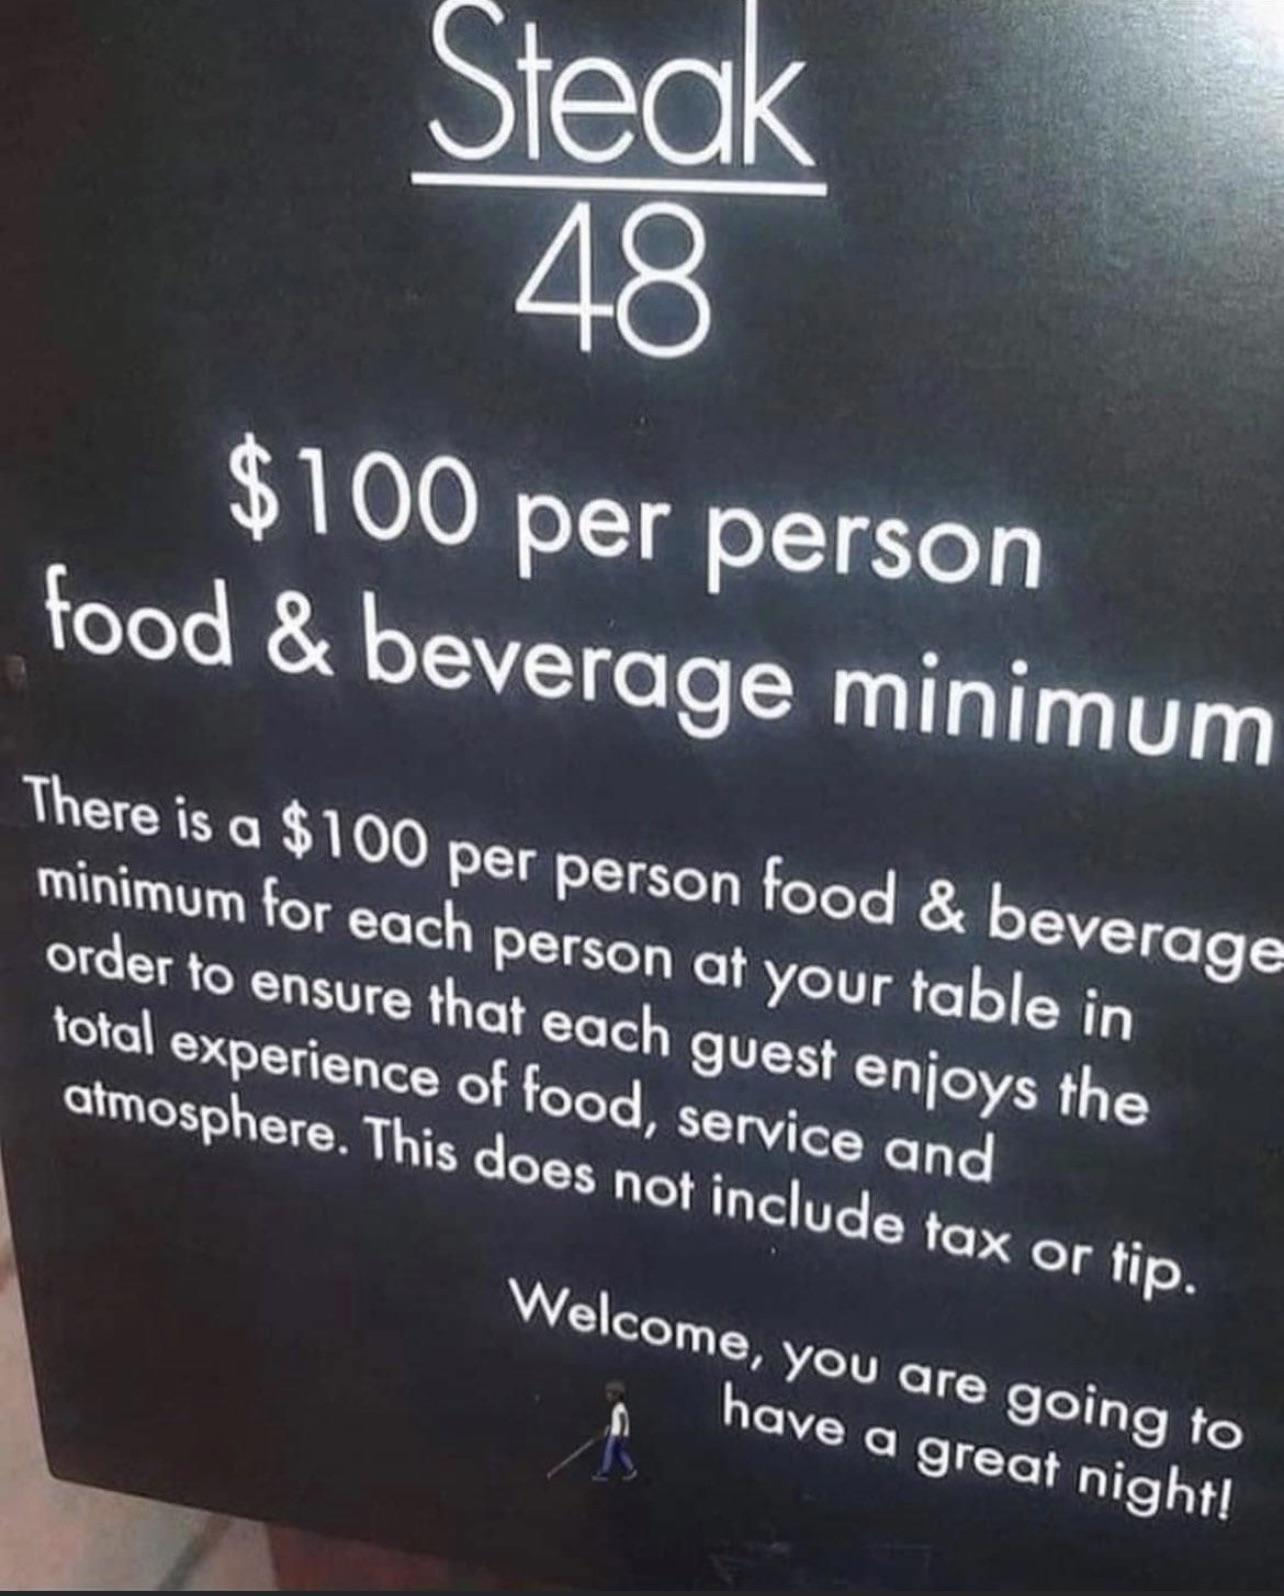 Some regulations if you want to get in this restaurant